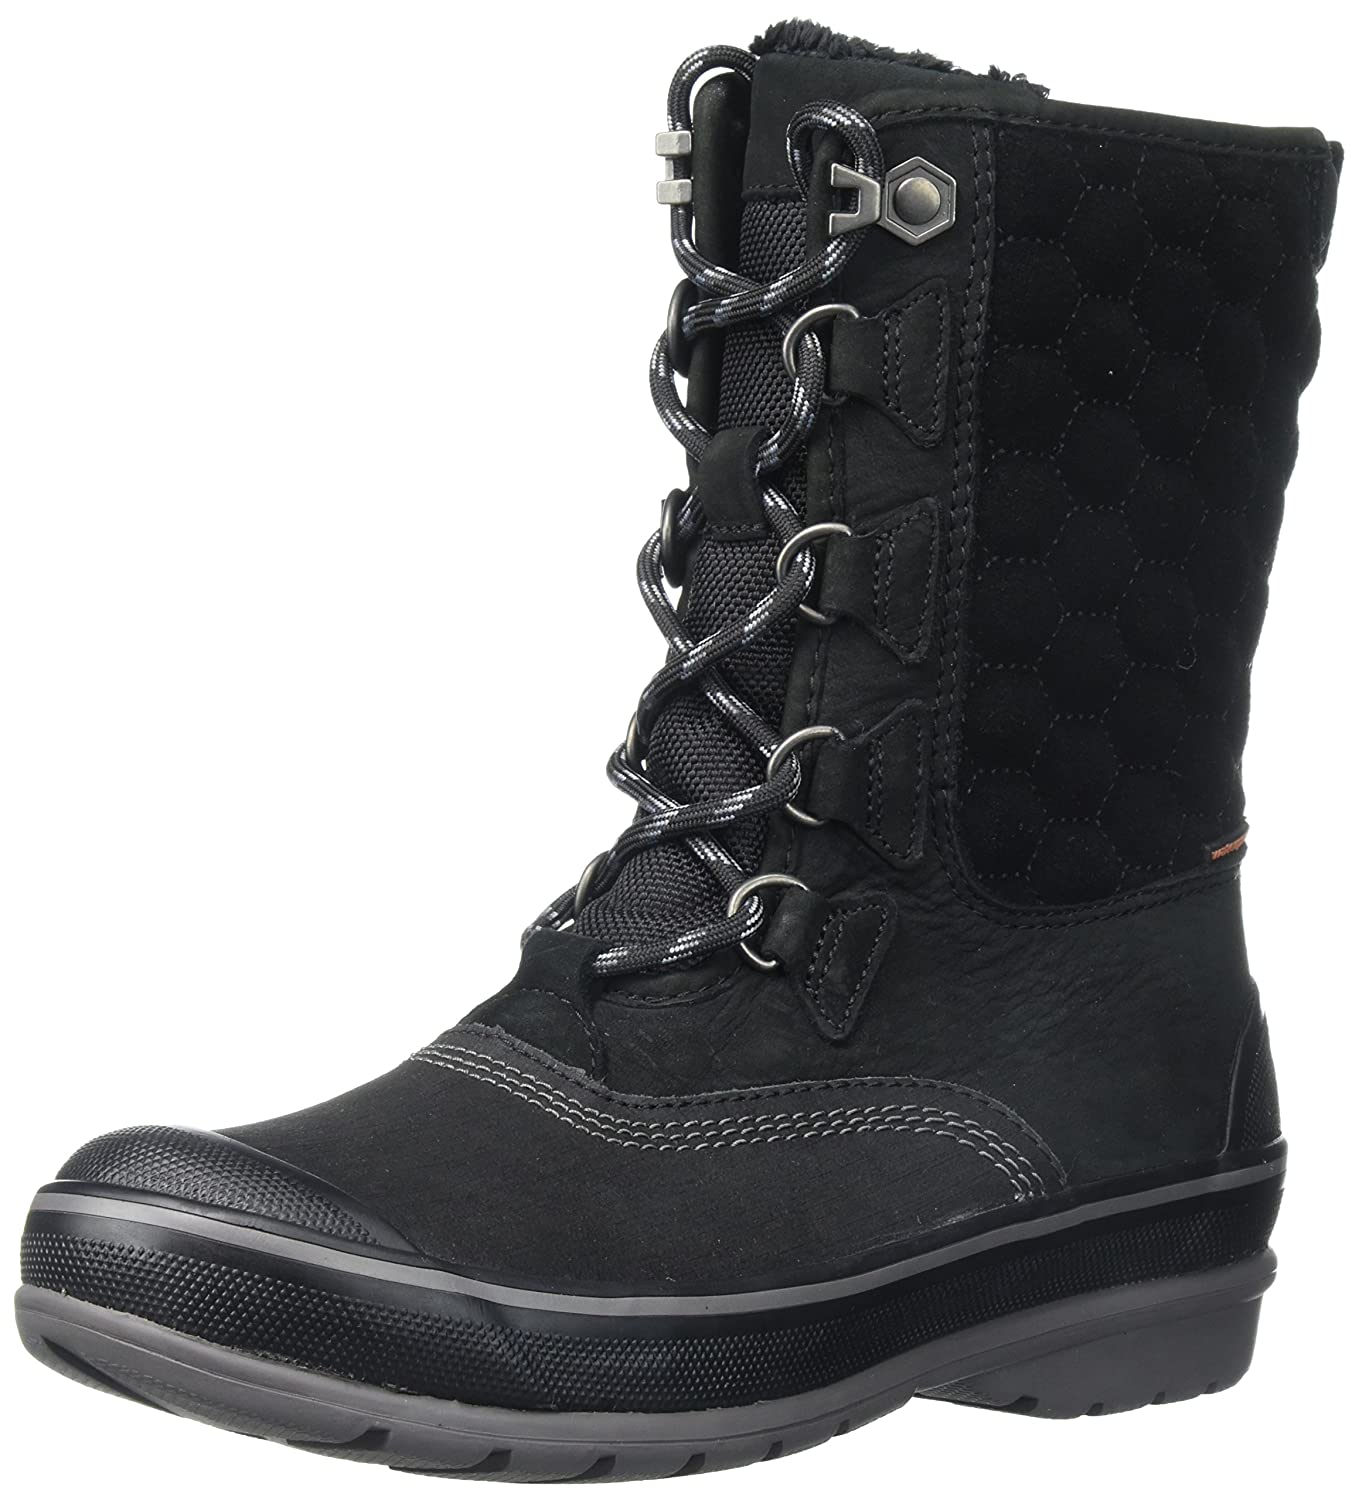 CLARKS Women's Muckers Lace Snow Boot B01MU0164K 5 B(M) US|Black Nubuck